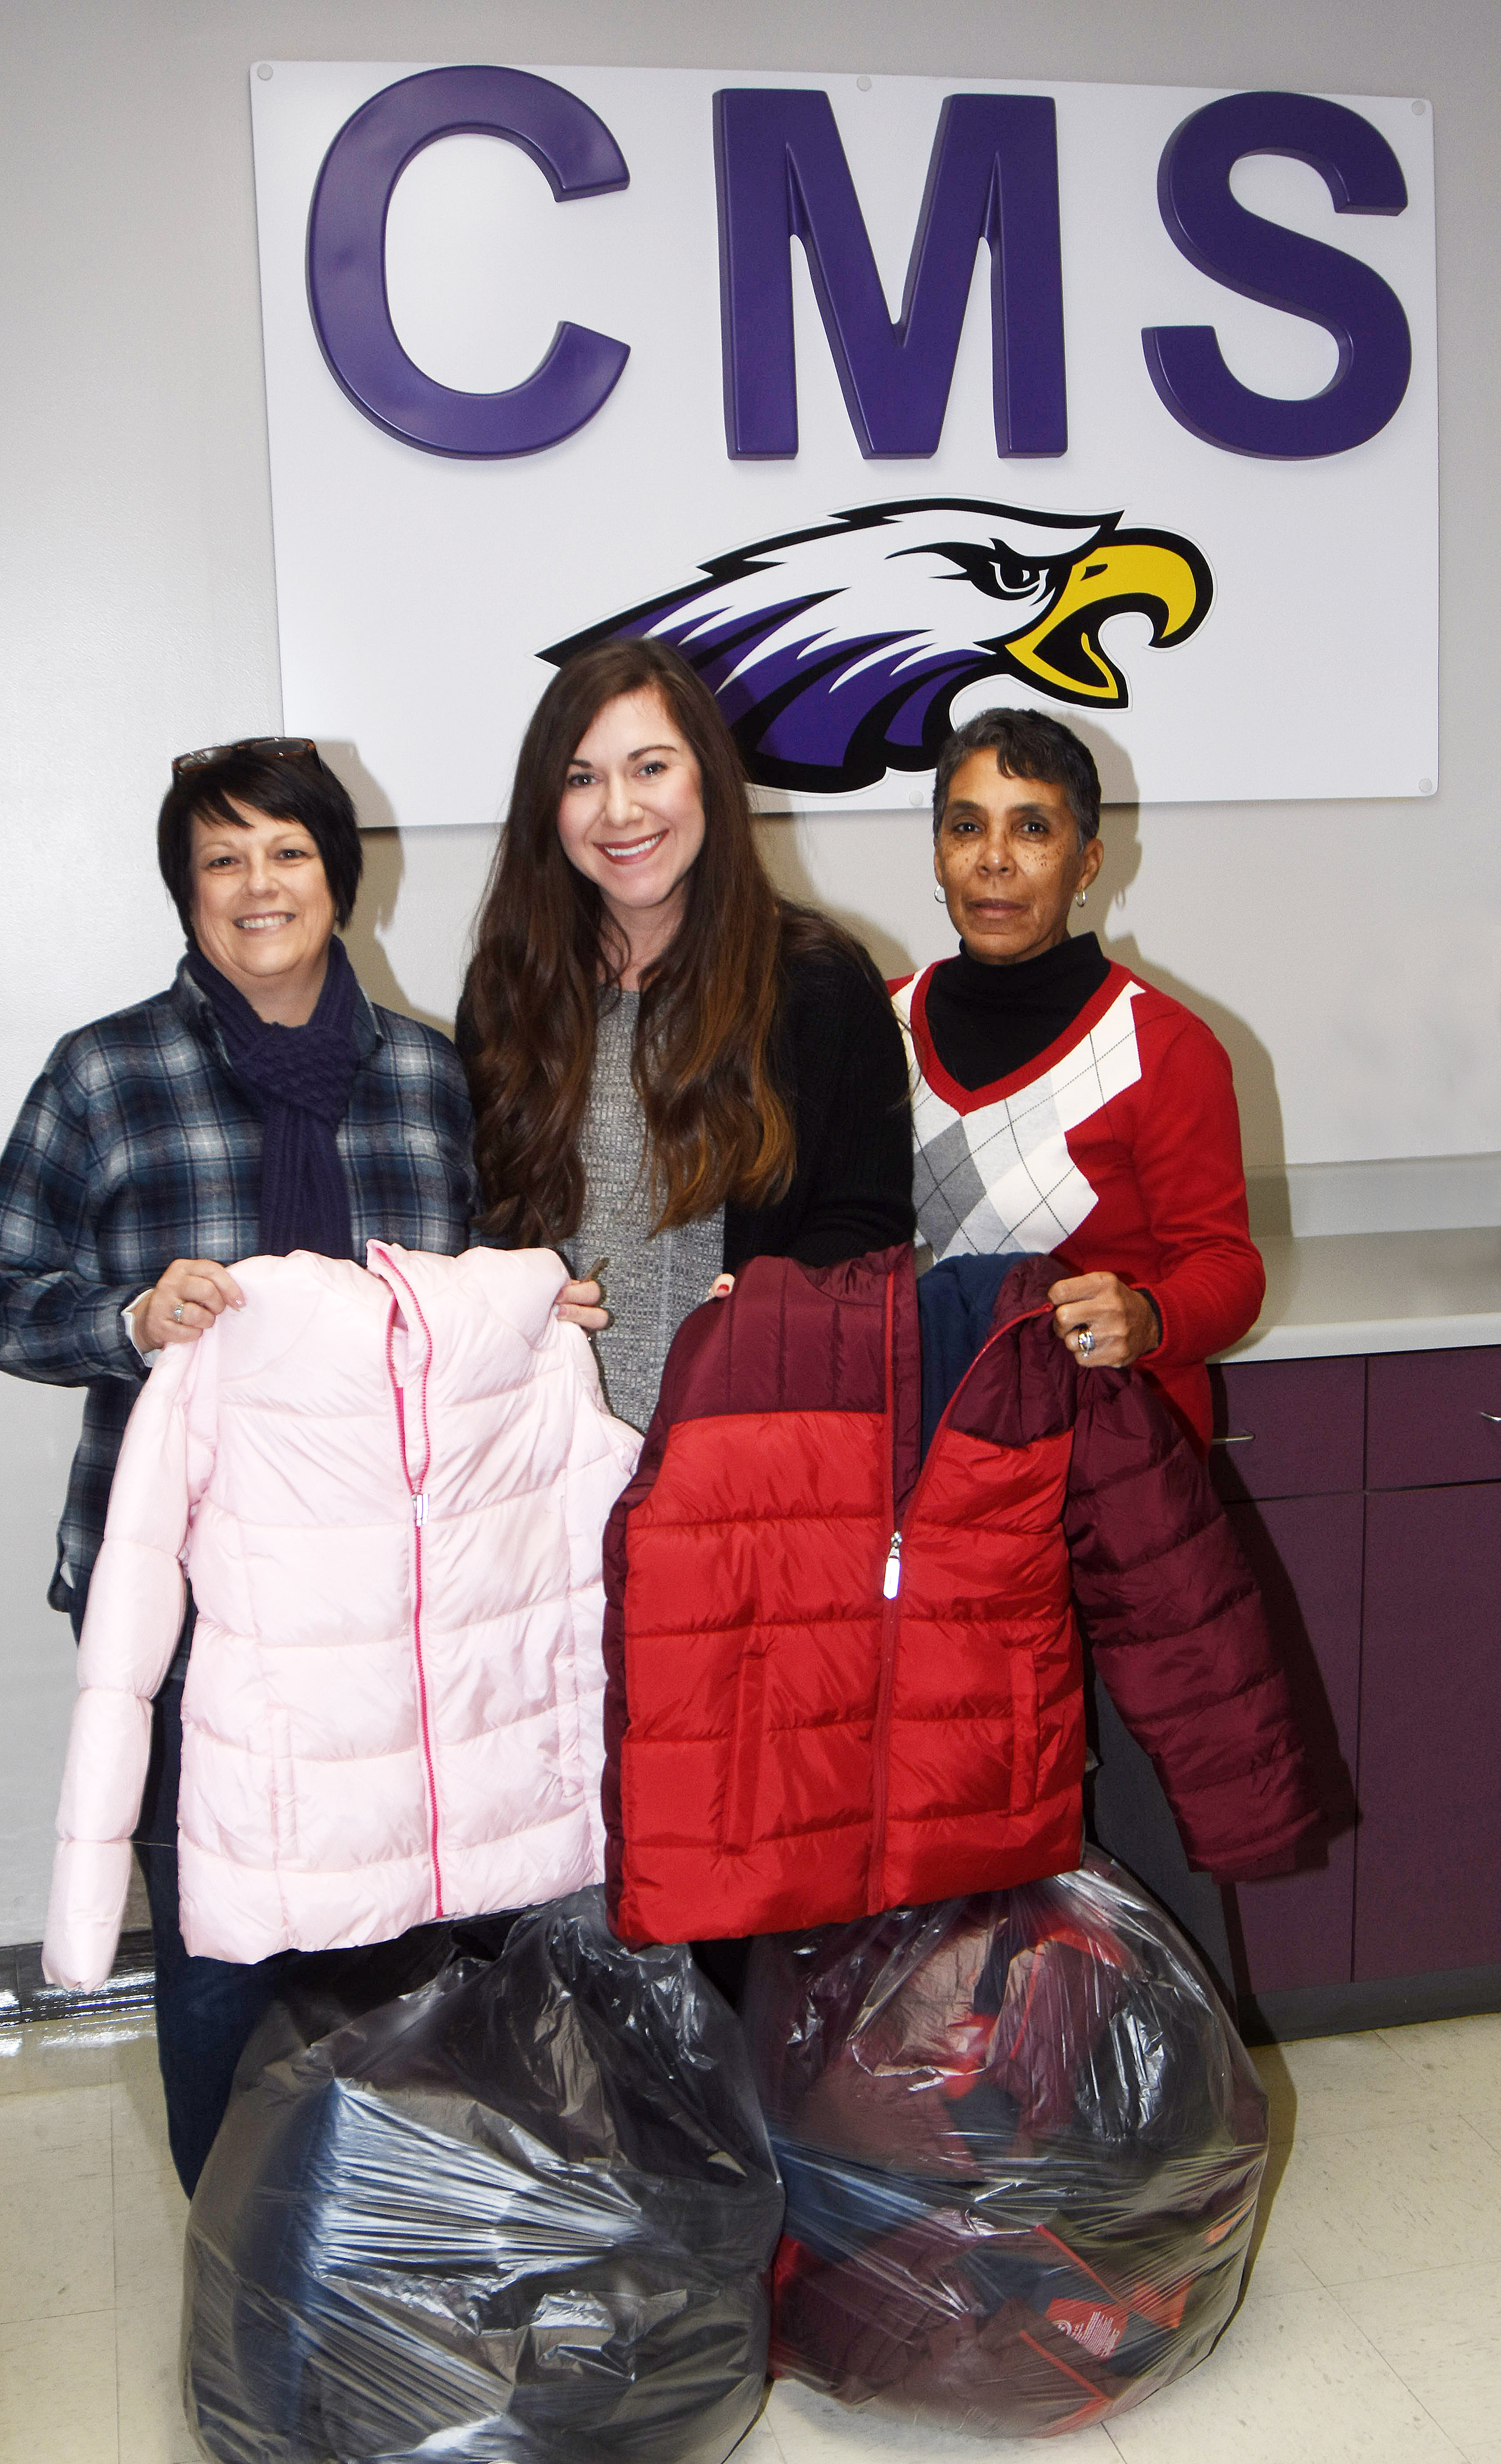 On behalf of the Campbellsville Kiwanis Club, member Patricia Sprowles, at left, recently donated several coats to Campbellsville elementary and middle school students. Receiving the coats were Campbellsville Family Resource and Youth Services Center Director Courtney Sowell, center, and assistant Sharon Hoskins-Sanders.